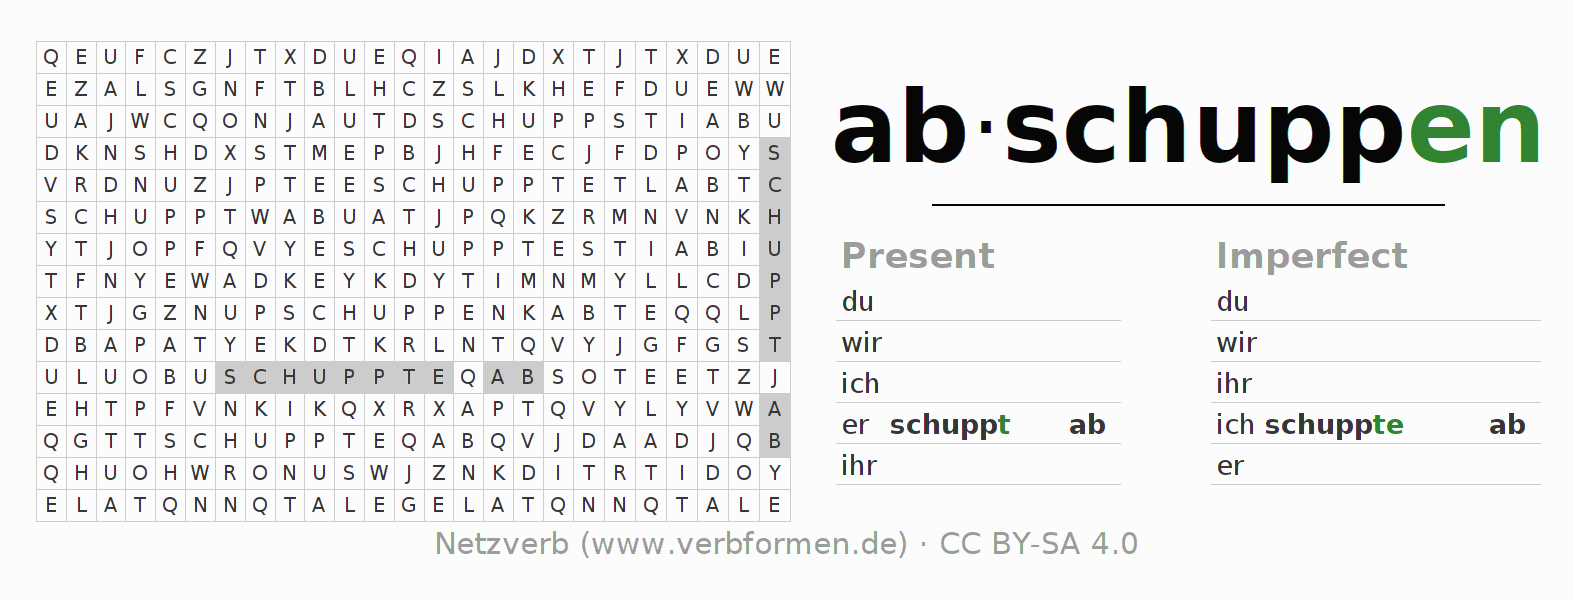 Word search puzzle for the conjugation of the verb abschuppen